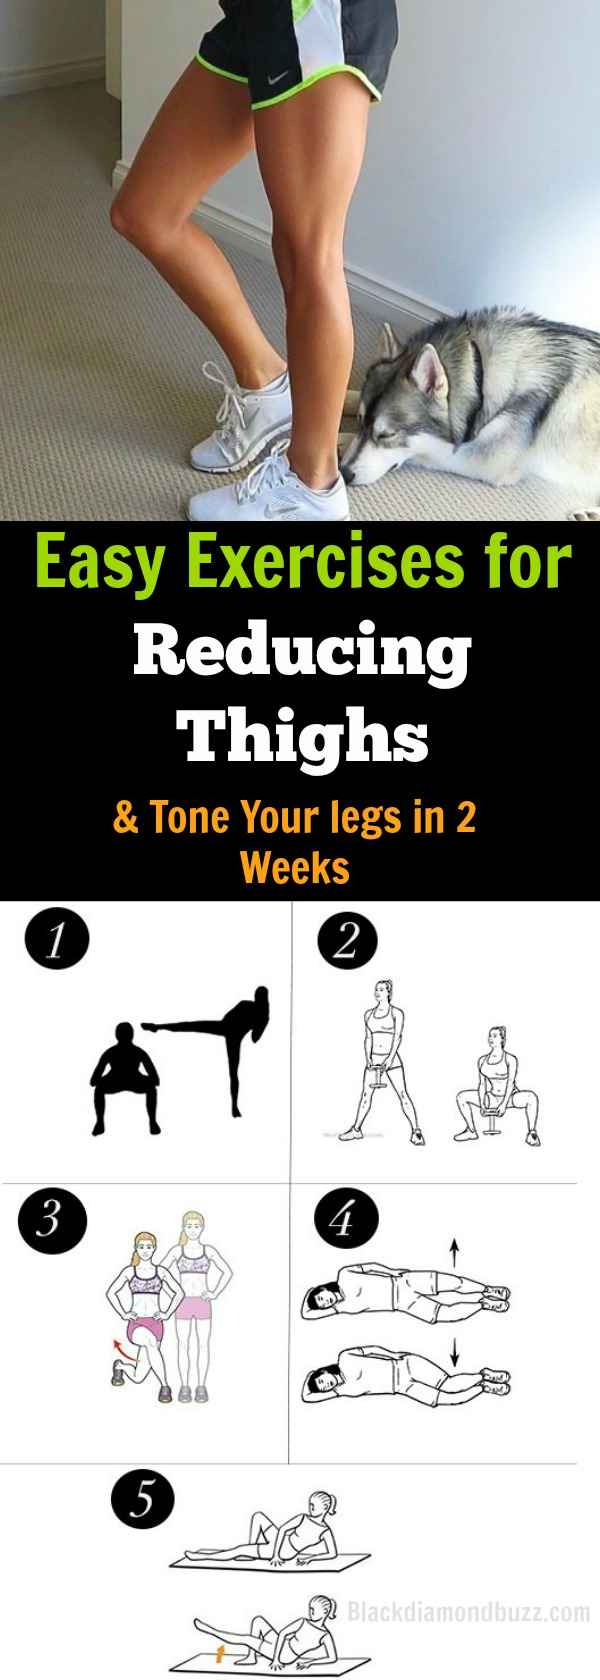 How do you tone your inner thighs and Shrink your thighs? Try these Easy Exercises for Reducing Thighs and Tone Your legs in 2